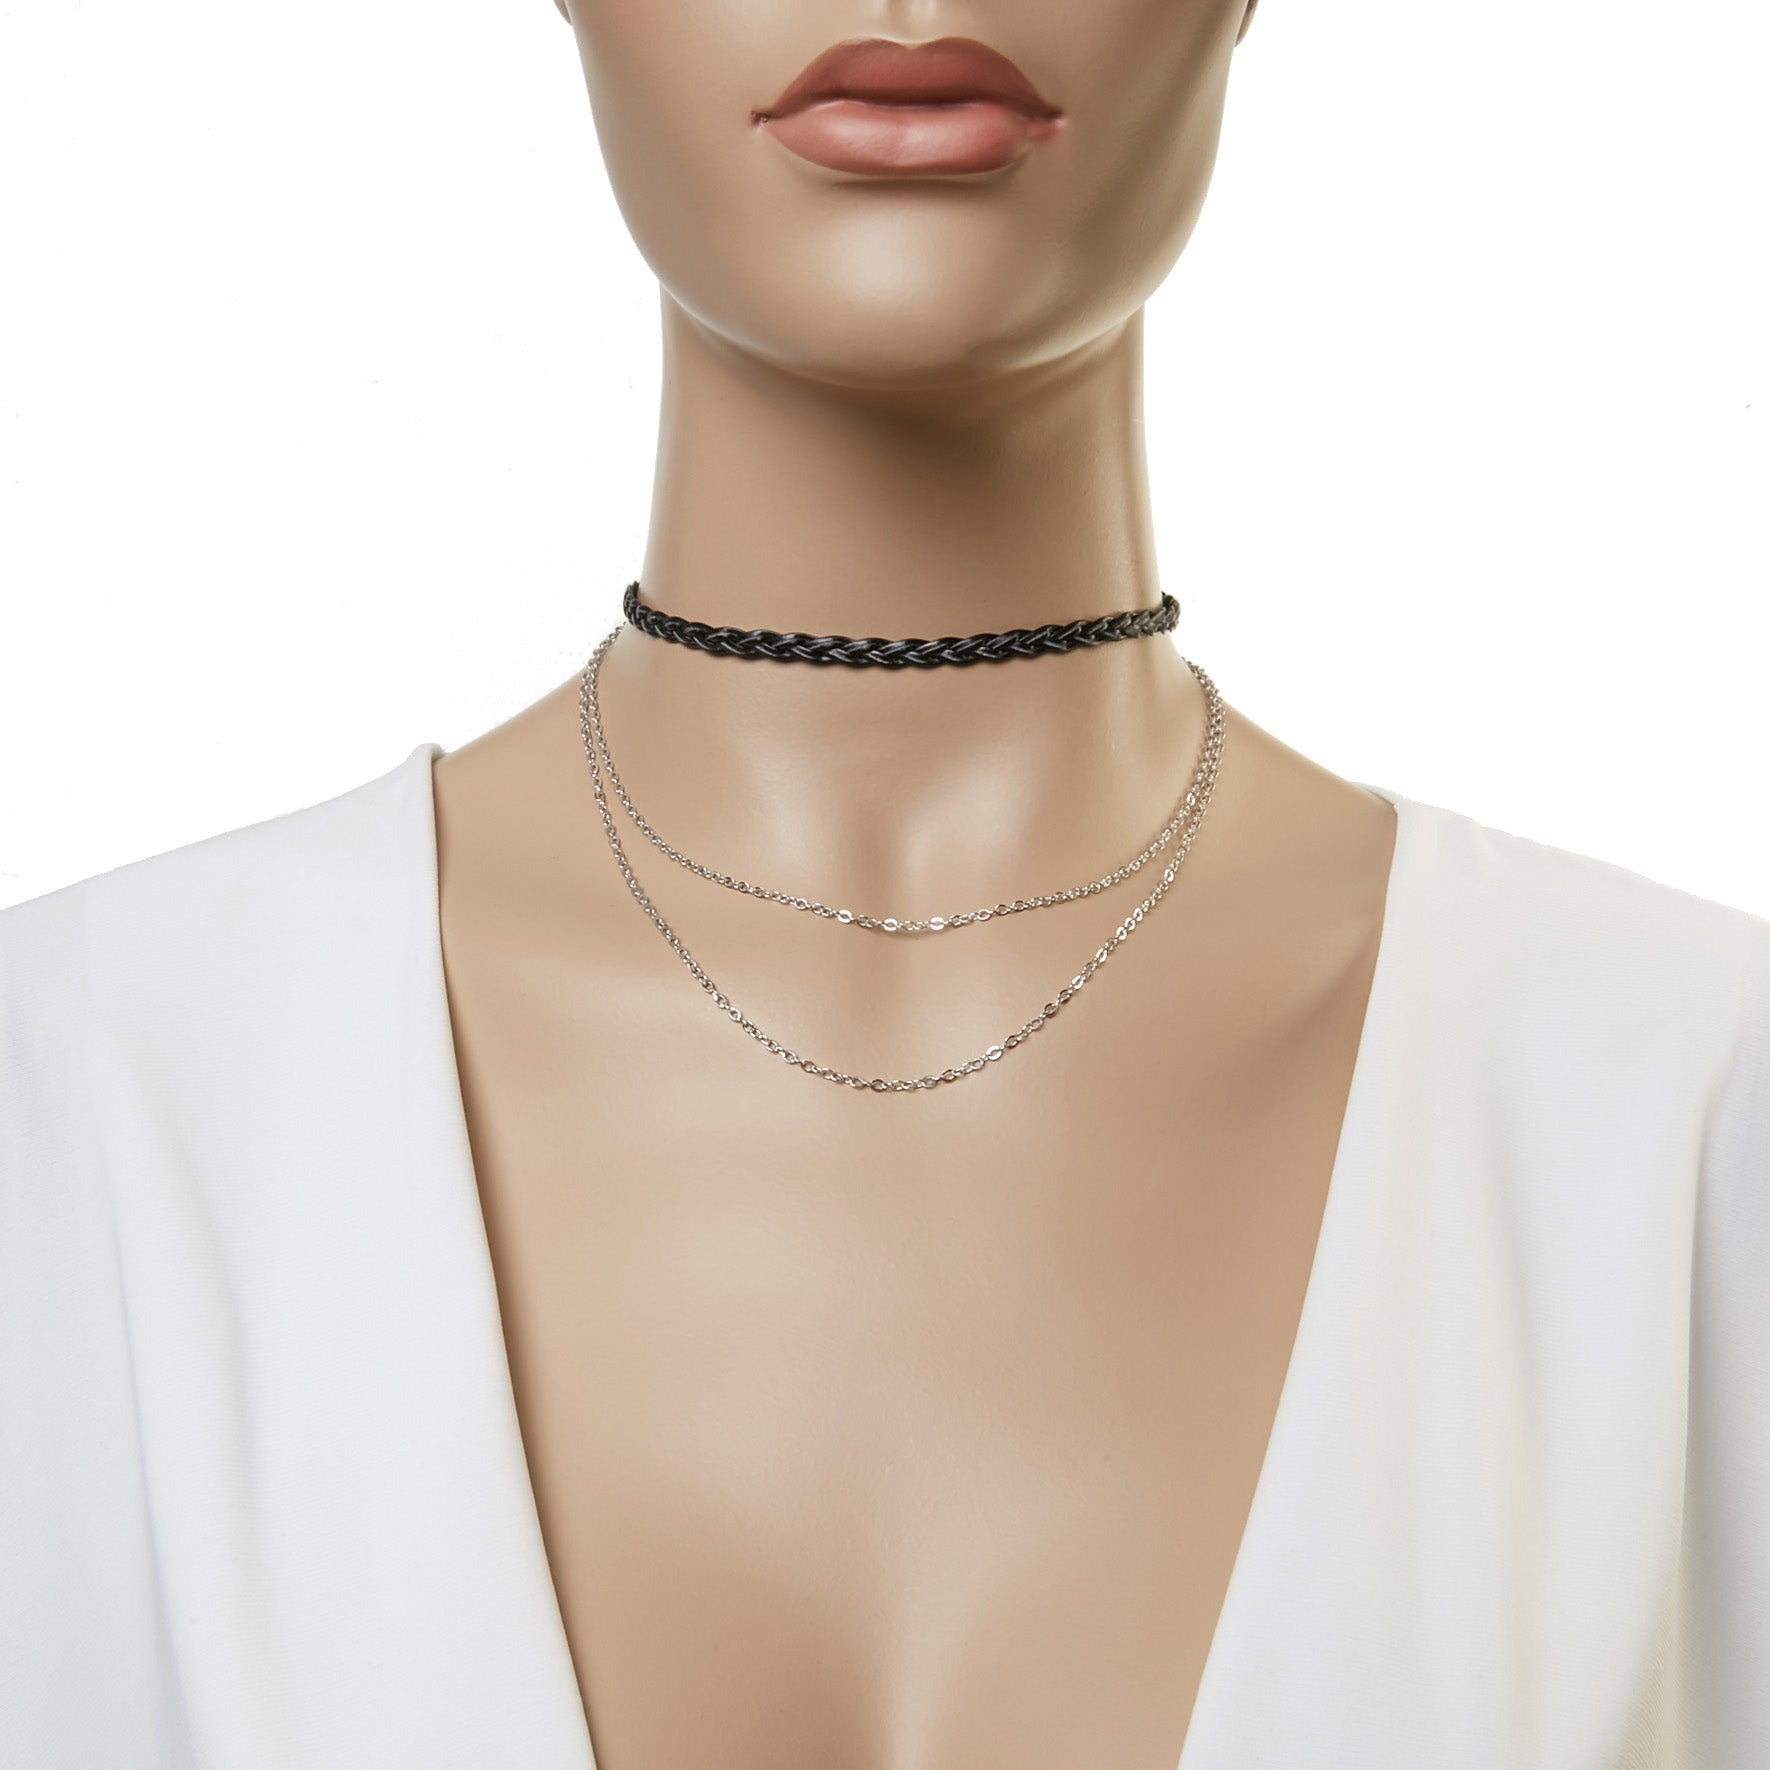 PU Plaited Choker with a Necklace Drop